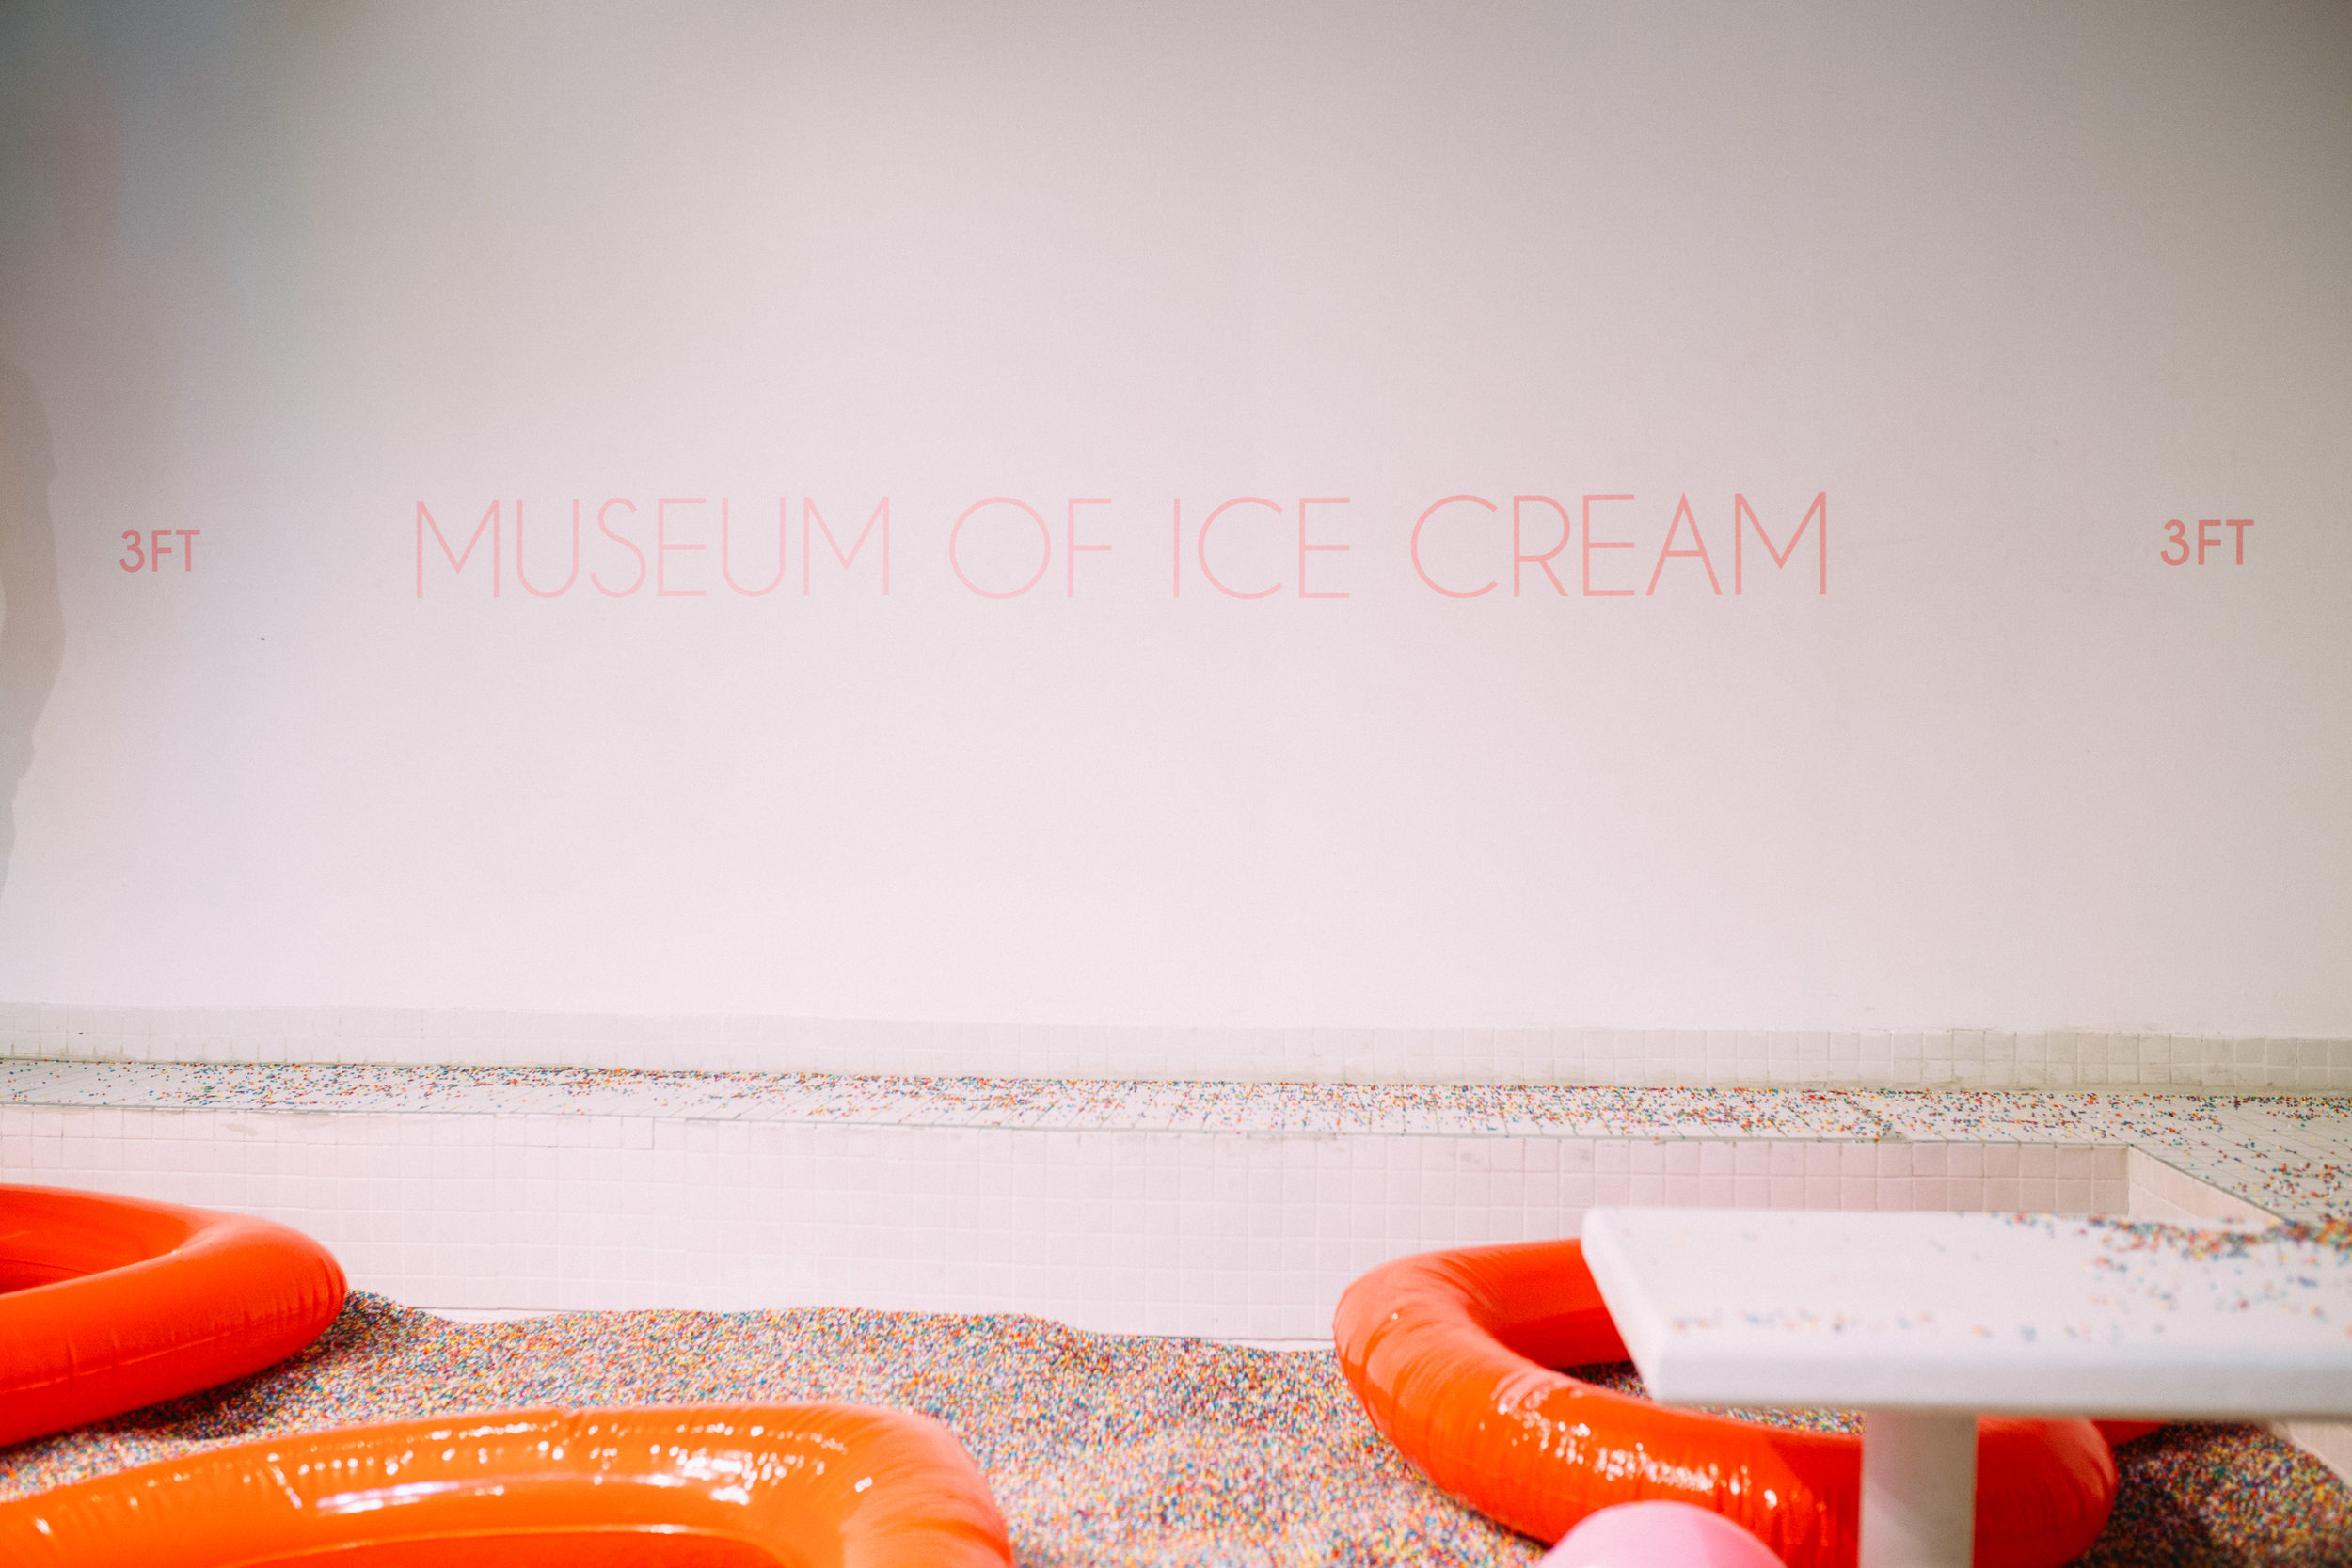 Museum of Ice Cream Meatpacking NYC New York City Lifestyle Photographer